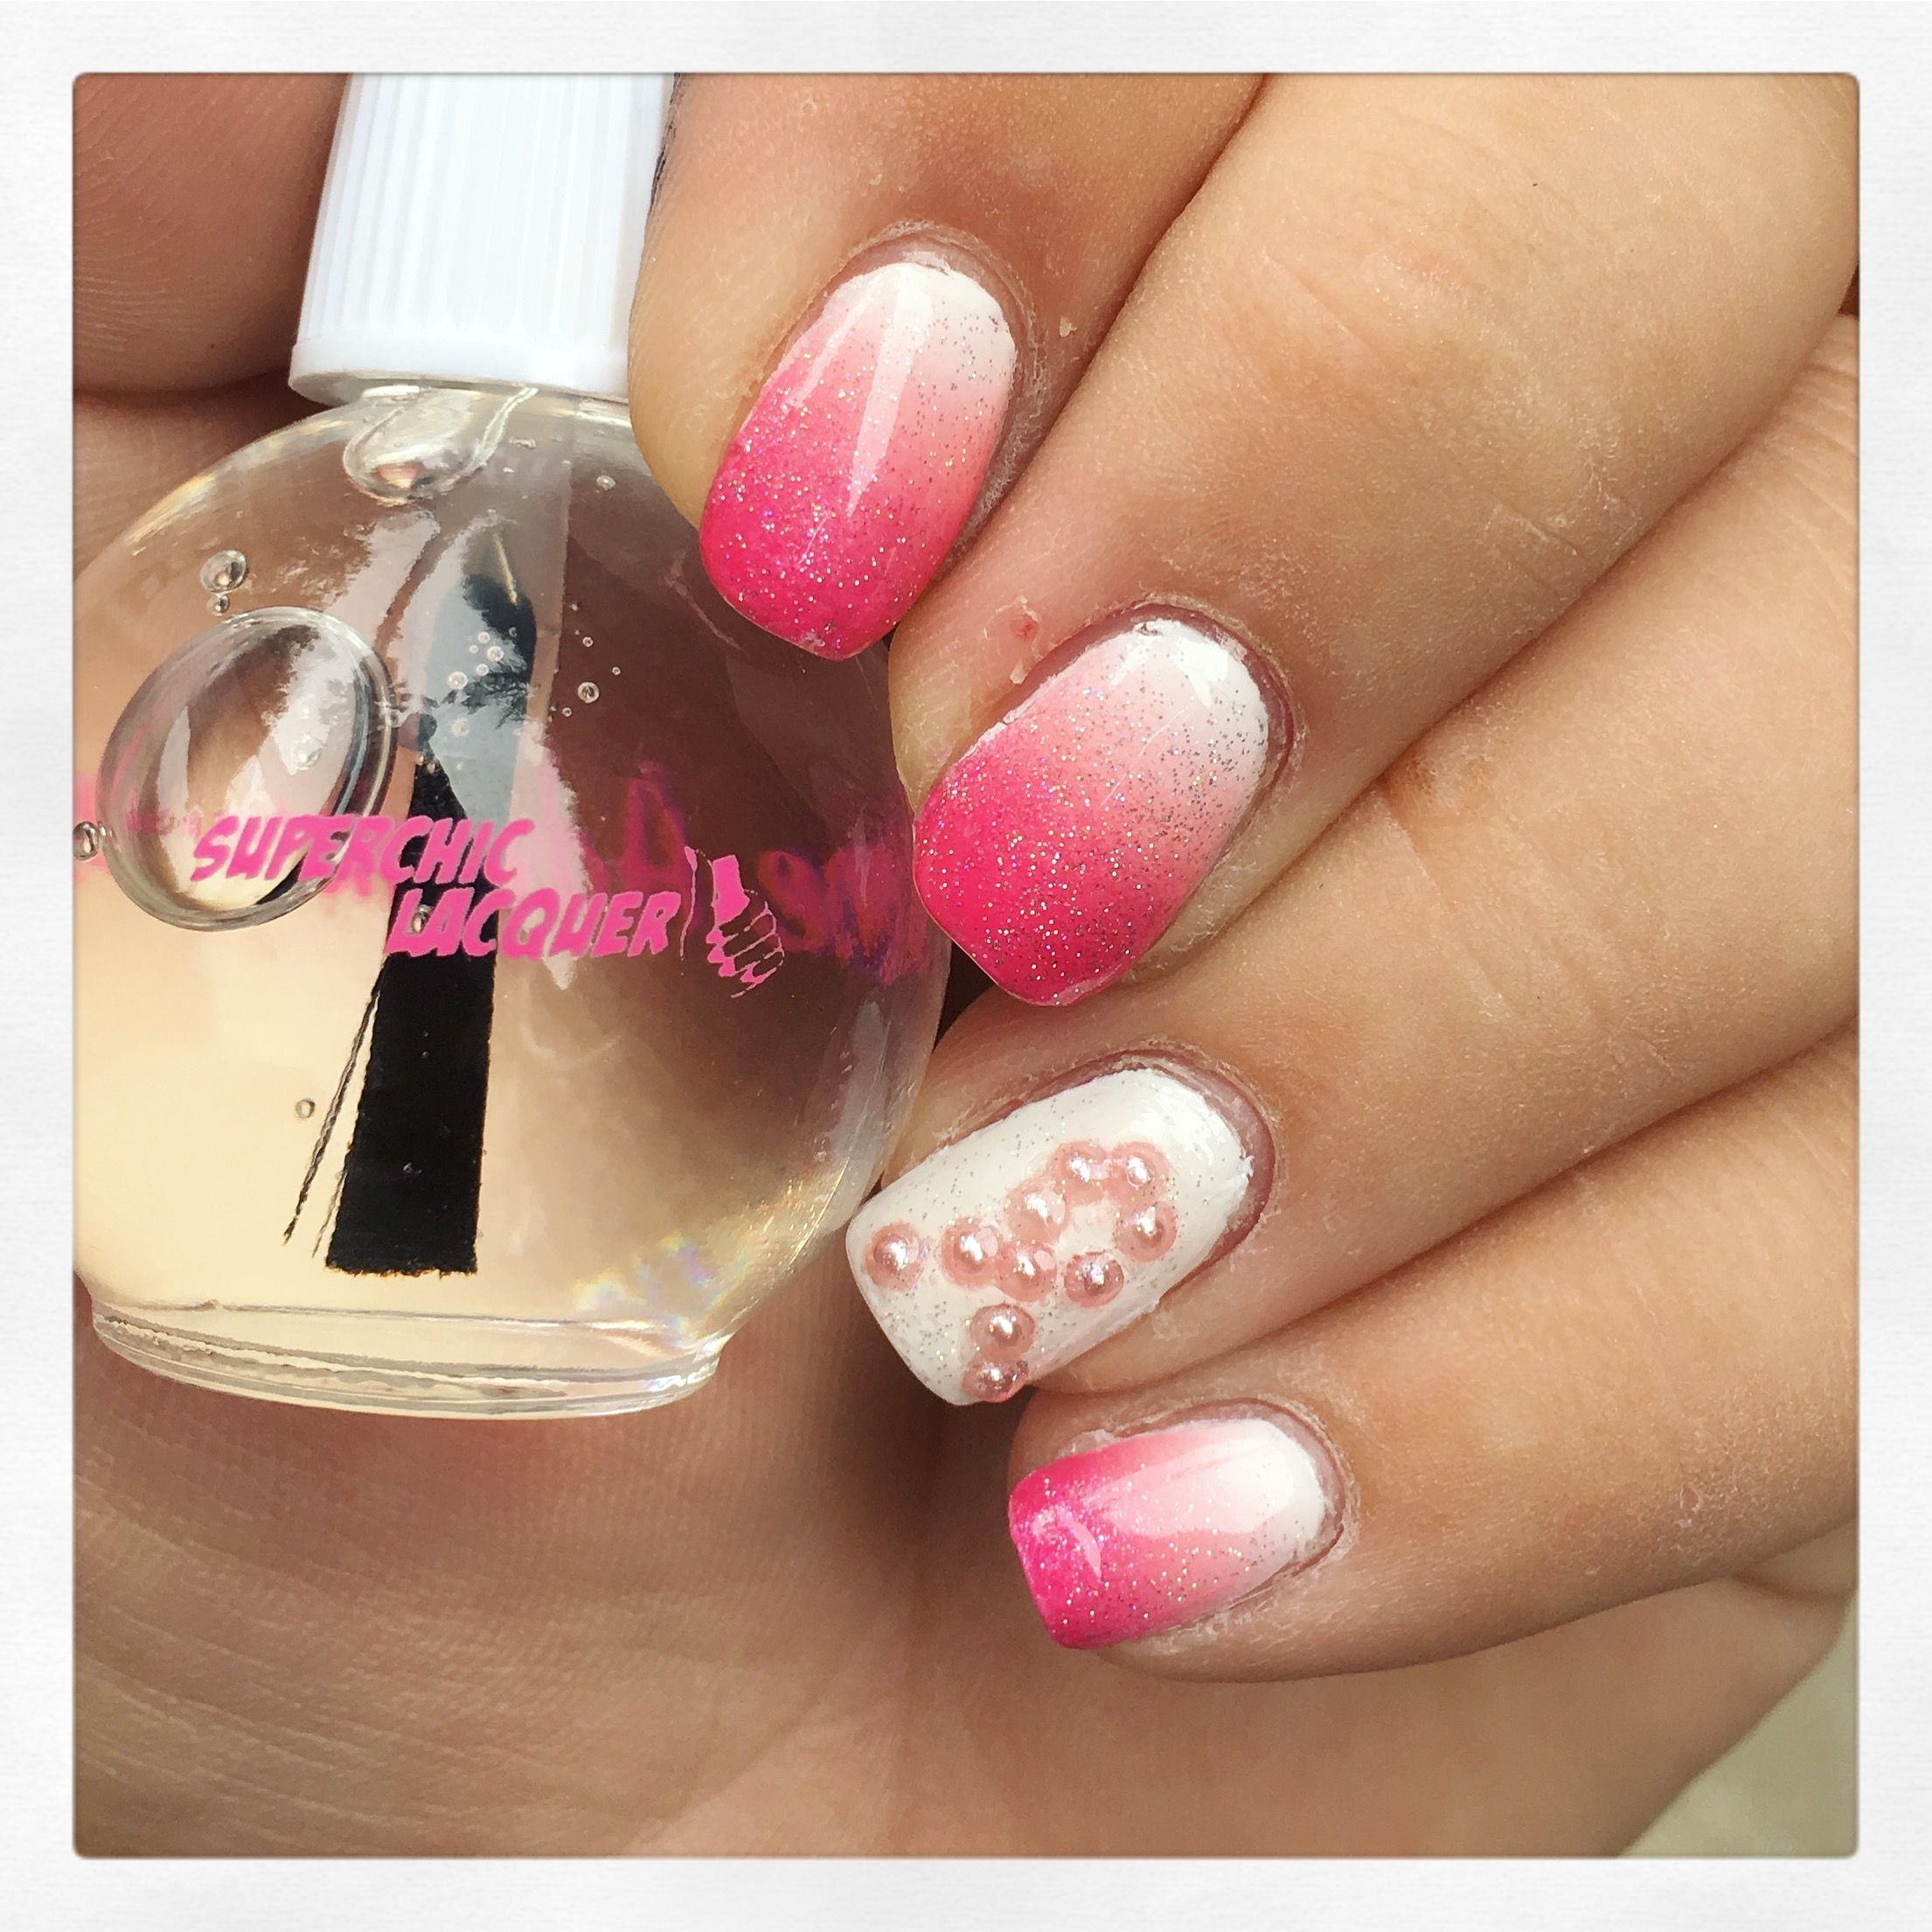 Breast cancer awareness gradient nail art with pearls | Nail art I ...